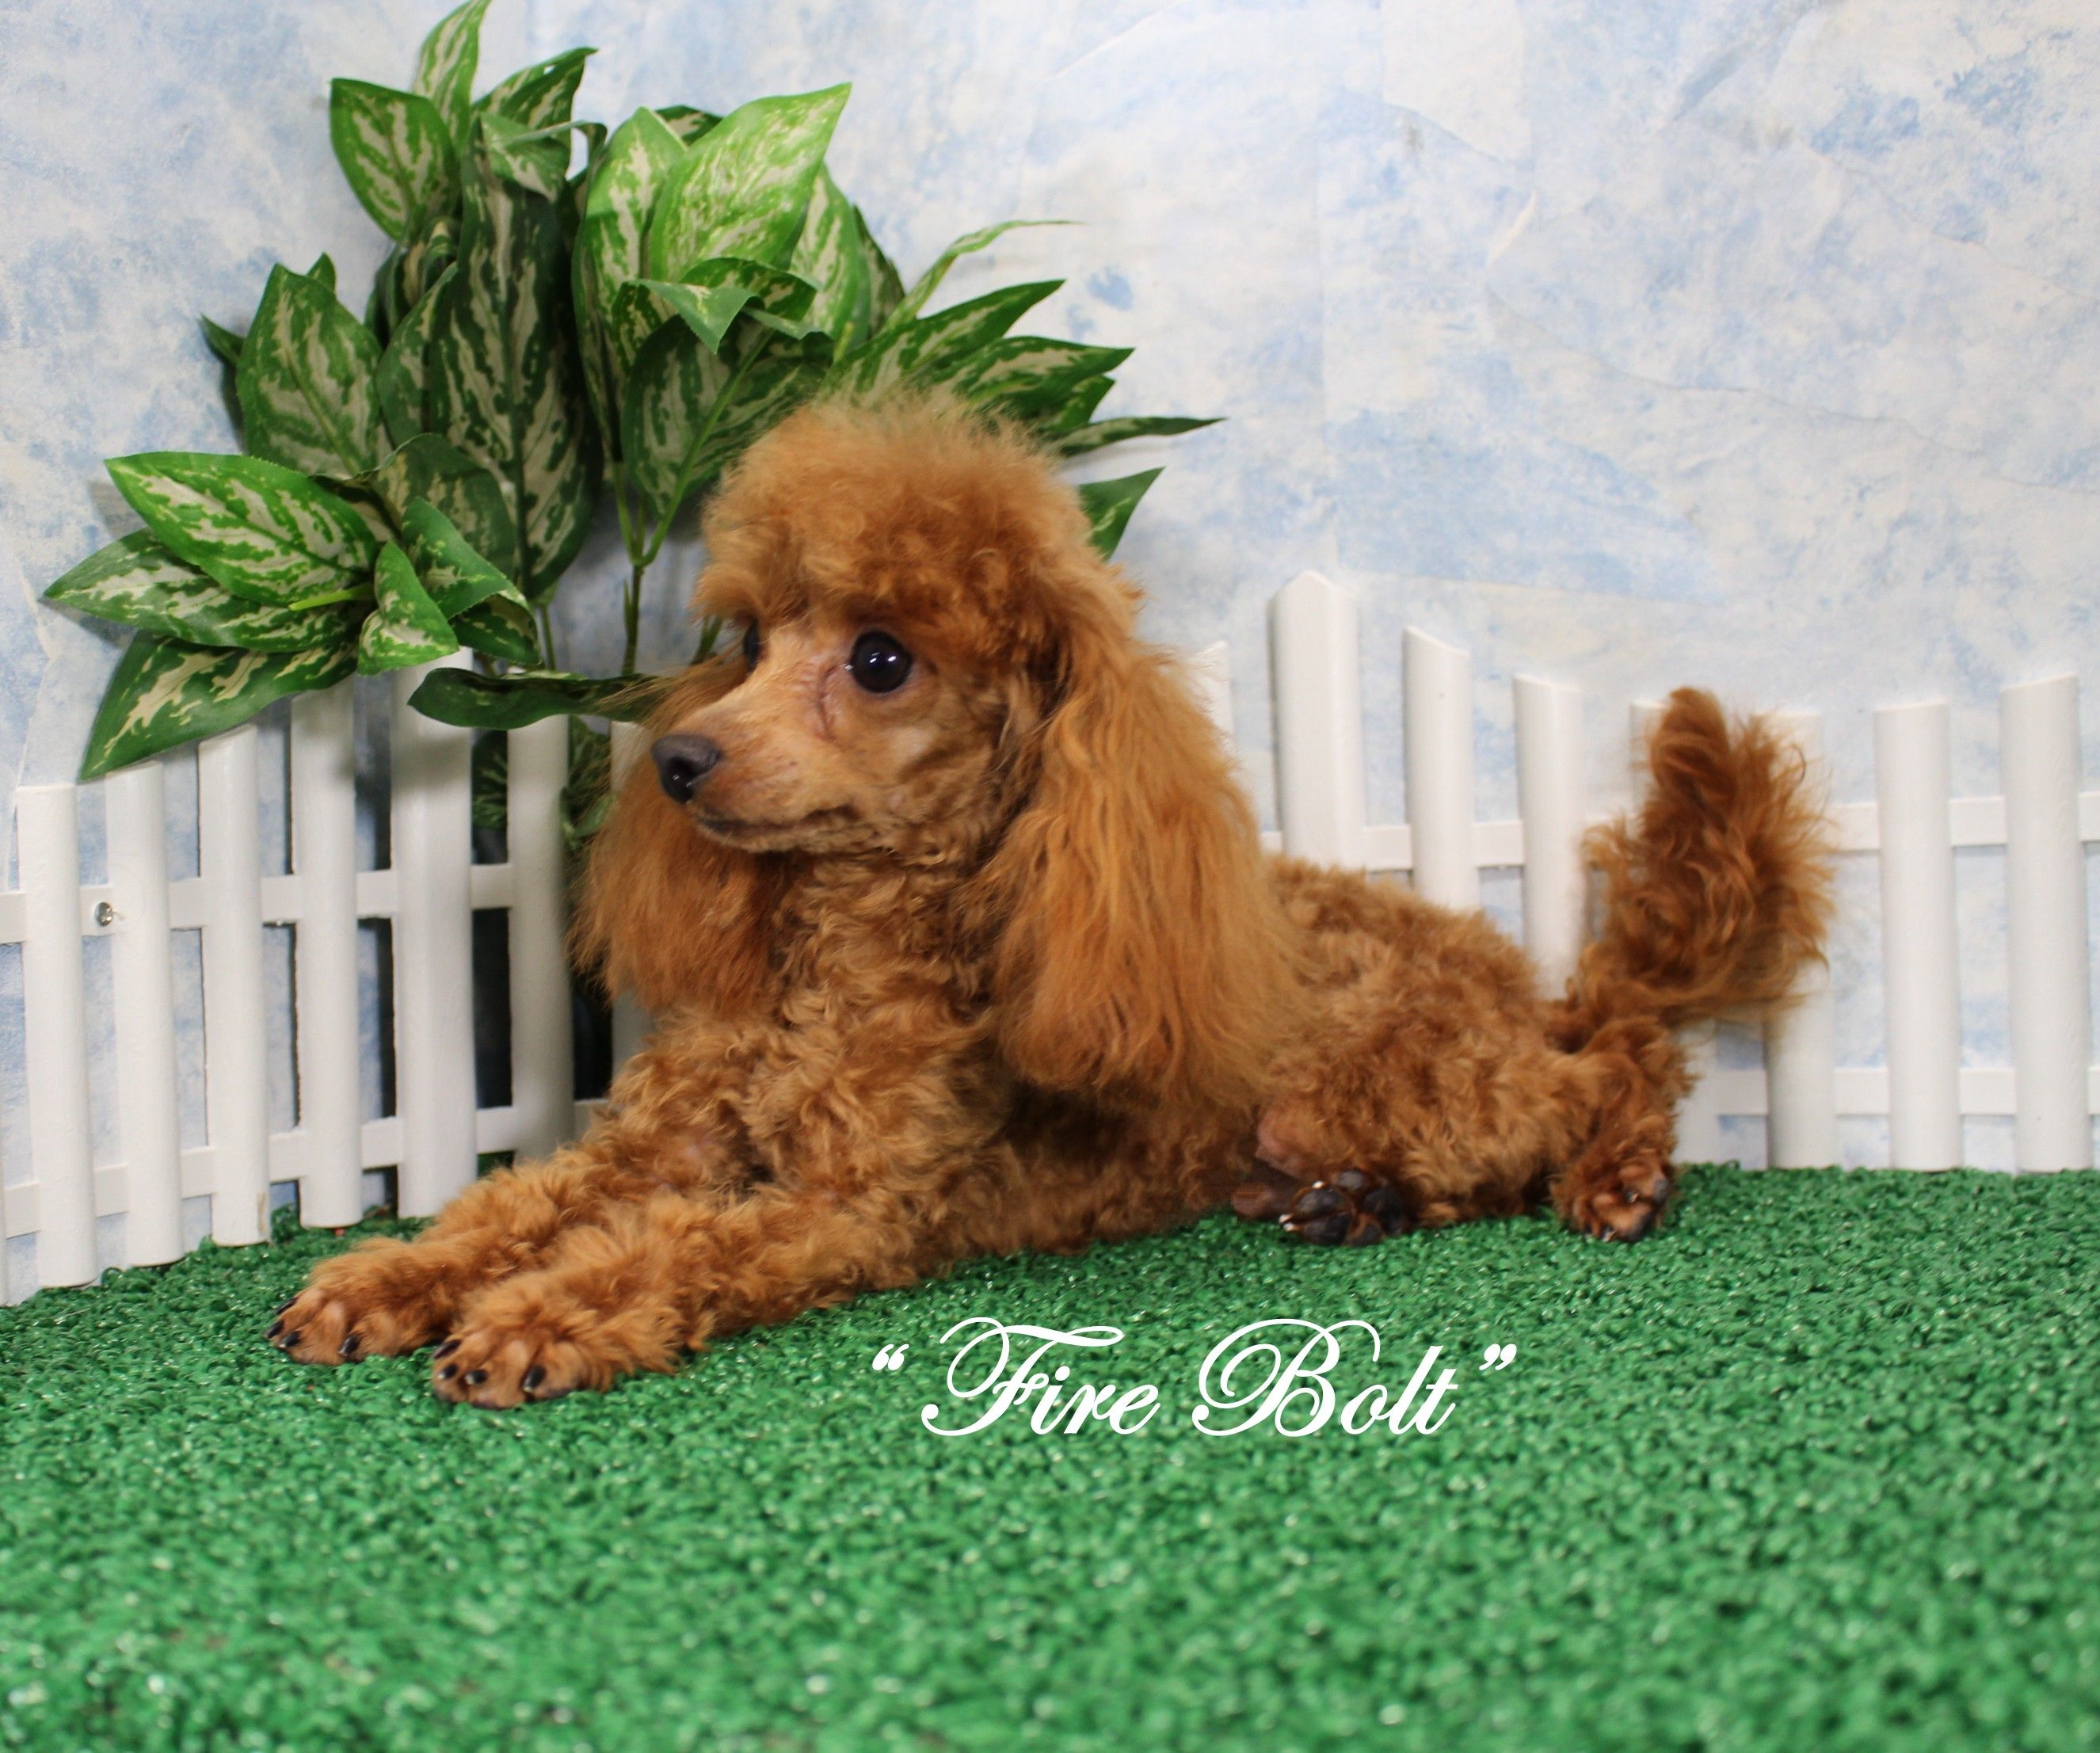 Designer And Mix Puppies Morkies Maltipoos Red Maltipoos Yorkshire Terrier Shih Tzu Havanese Toy And Teacup Poodle Yorkie Poo Poodle Puppy White Puppies